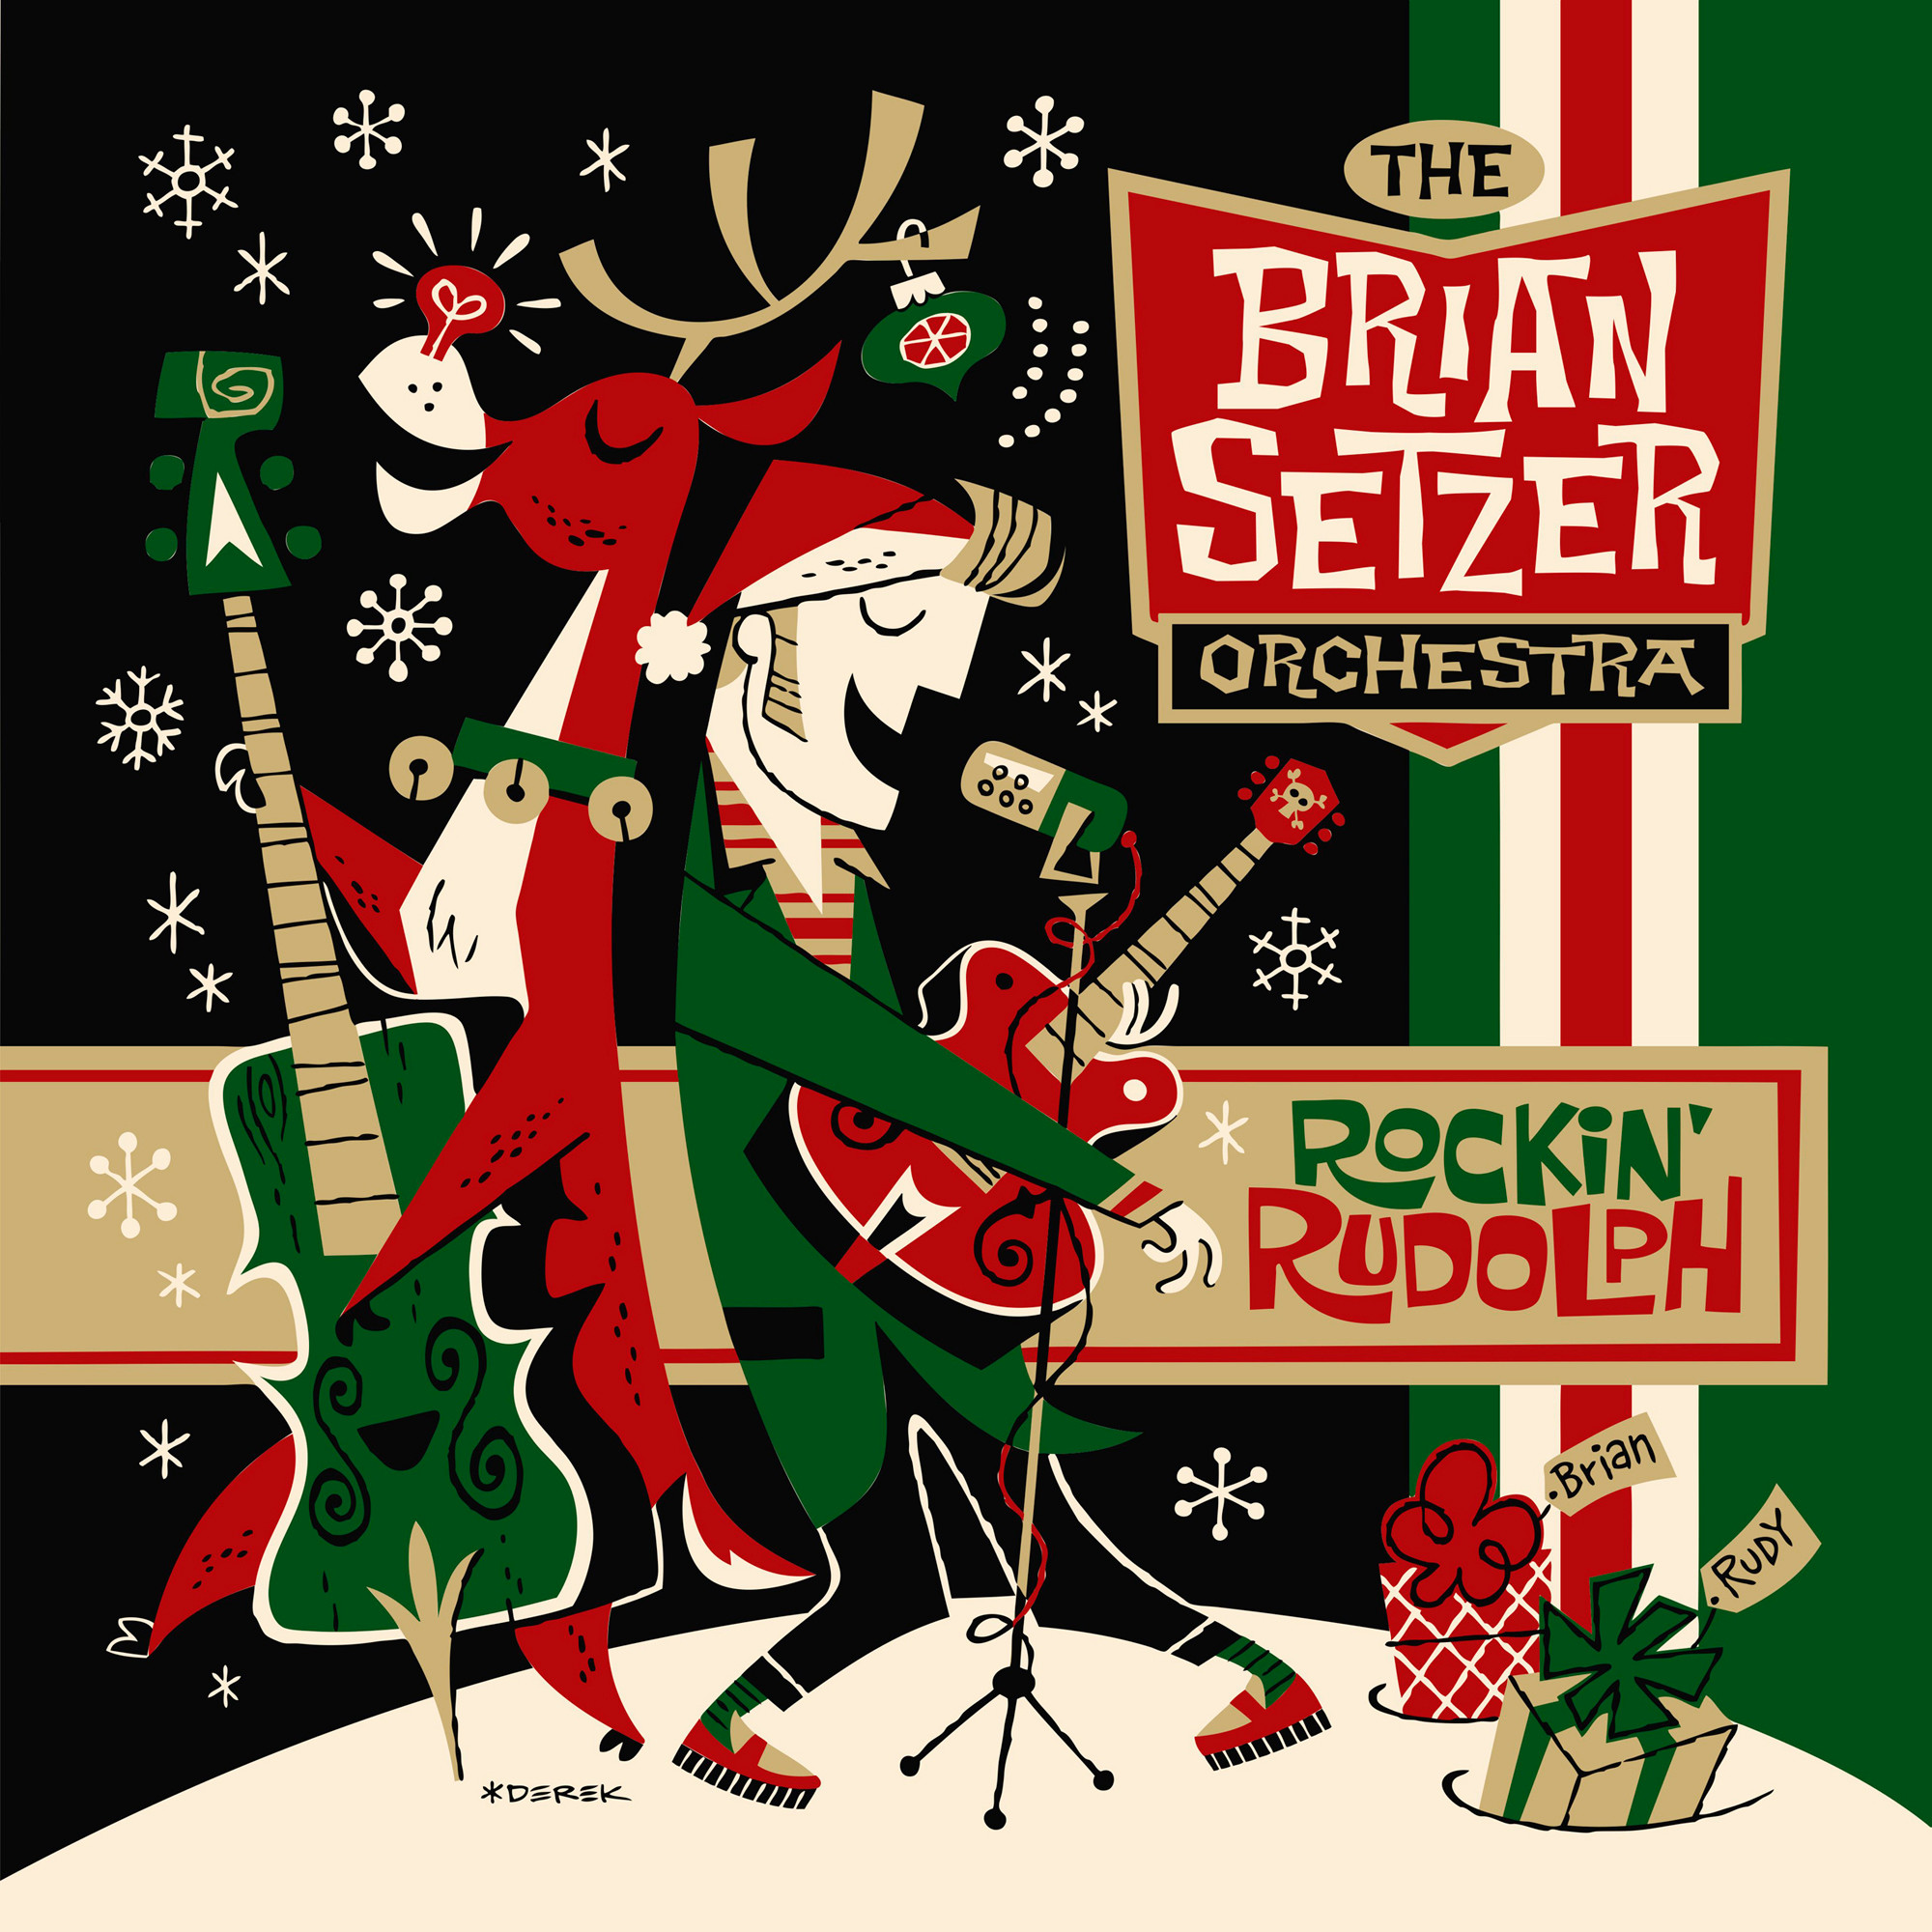 Holiday albums to brighten your next party | The Sumter Item